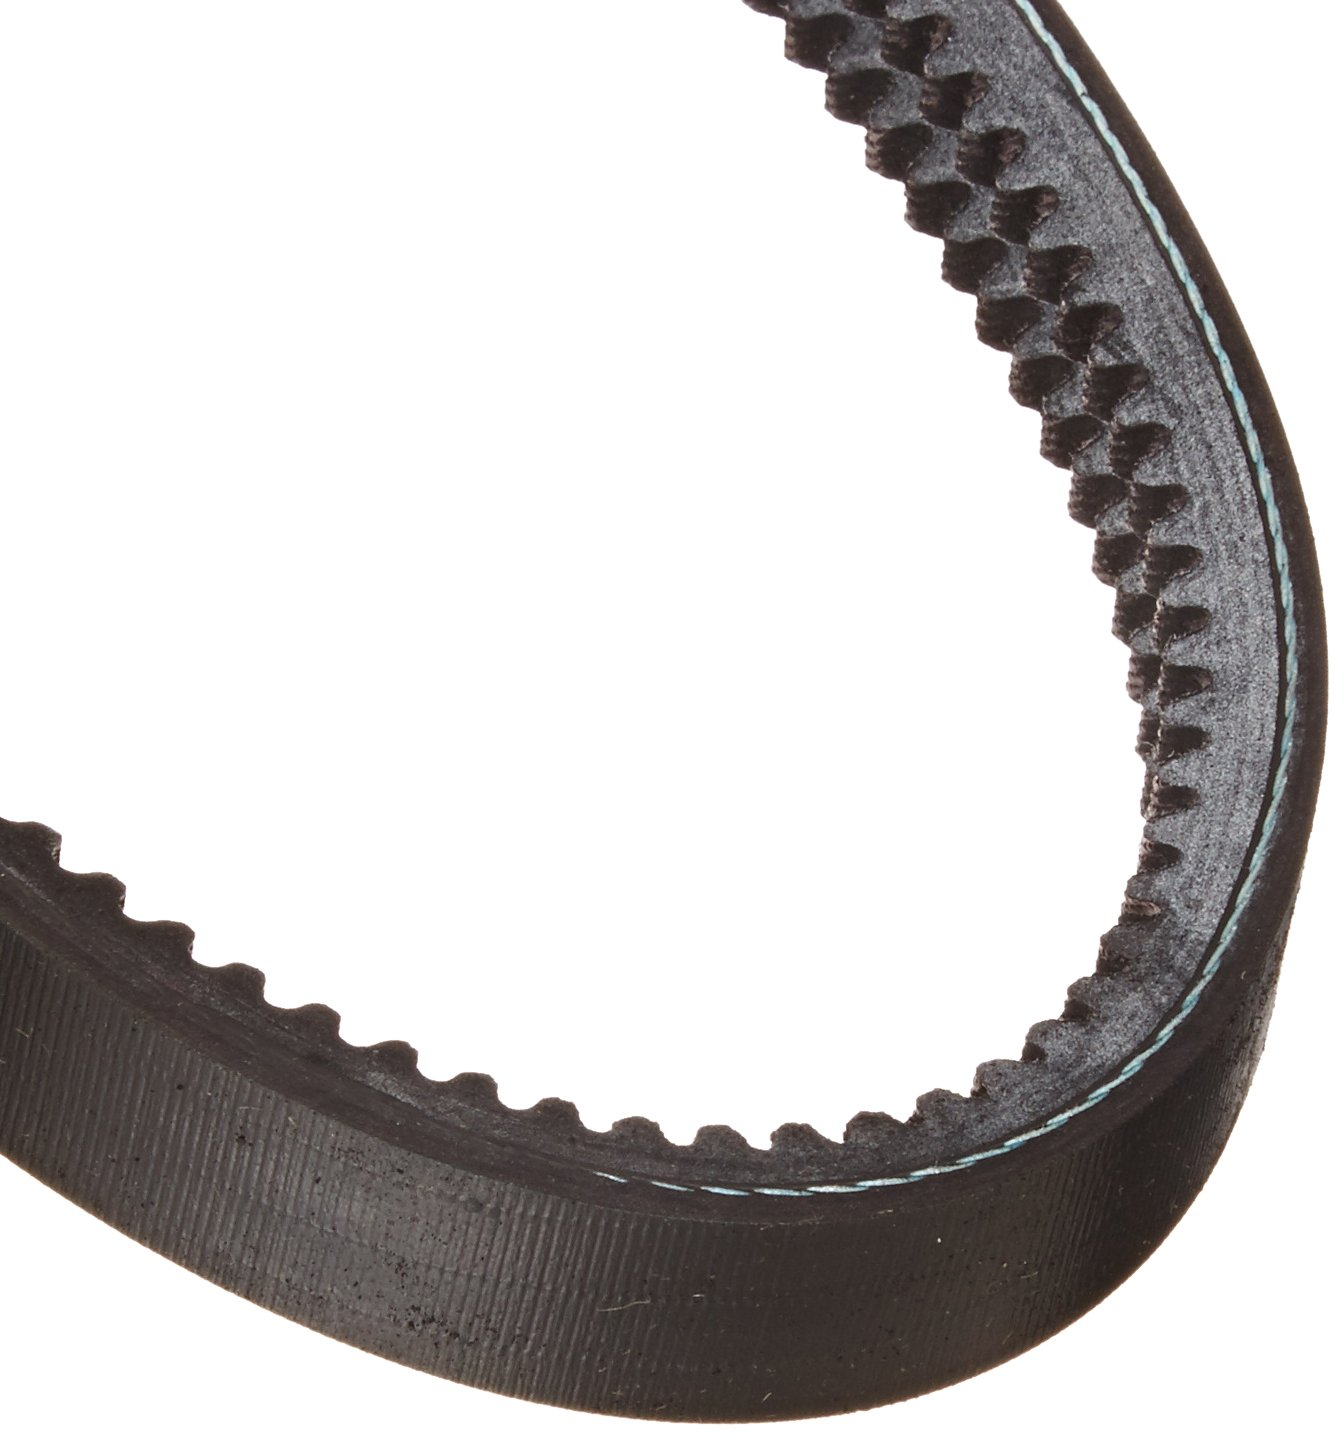 "Gates 2/3VX425 Super HC Molded Notch Powerband Belt, 3VX Section, 3/4"" Overall Width, 21/64"" Height, 42.5"" Belt Outside Circumference"